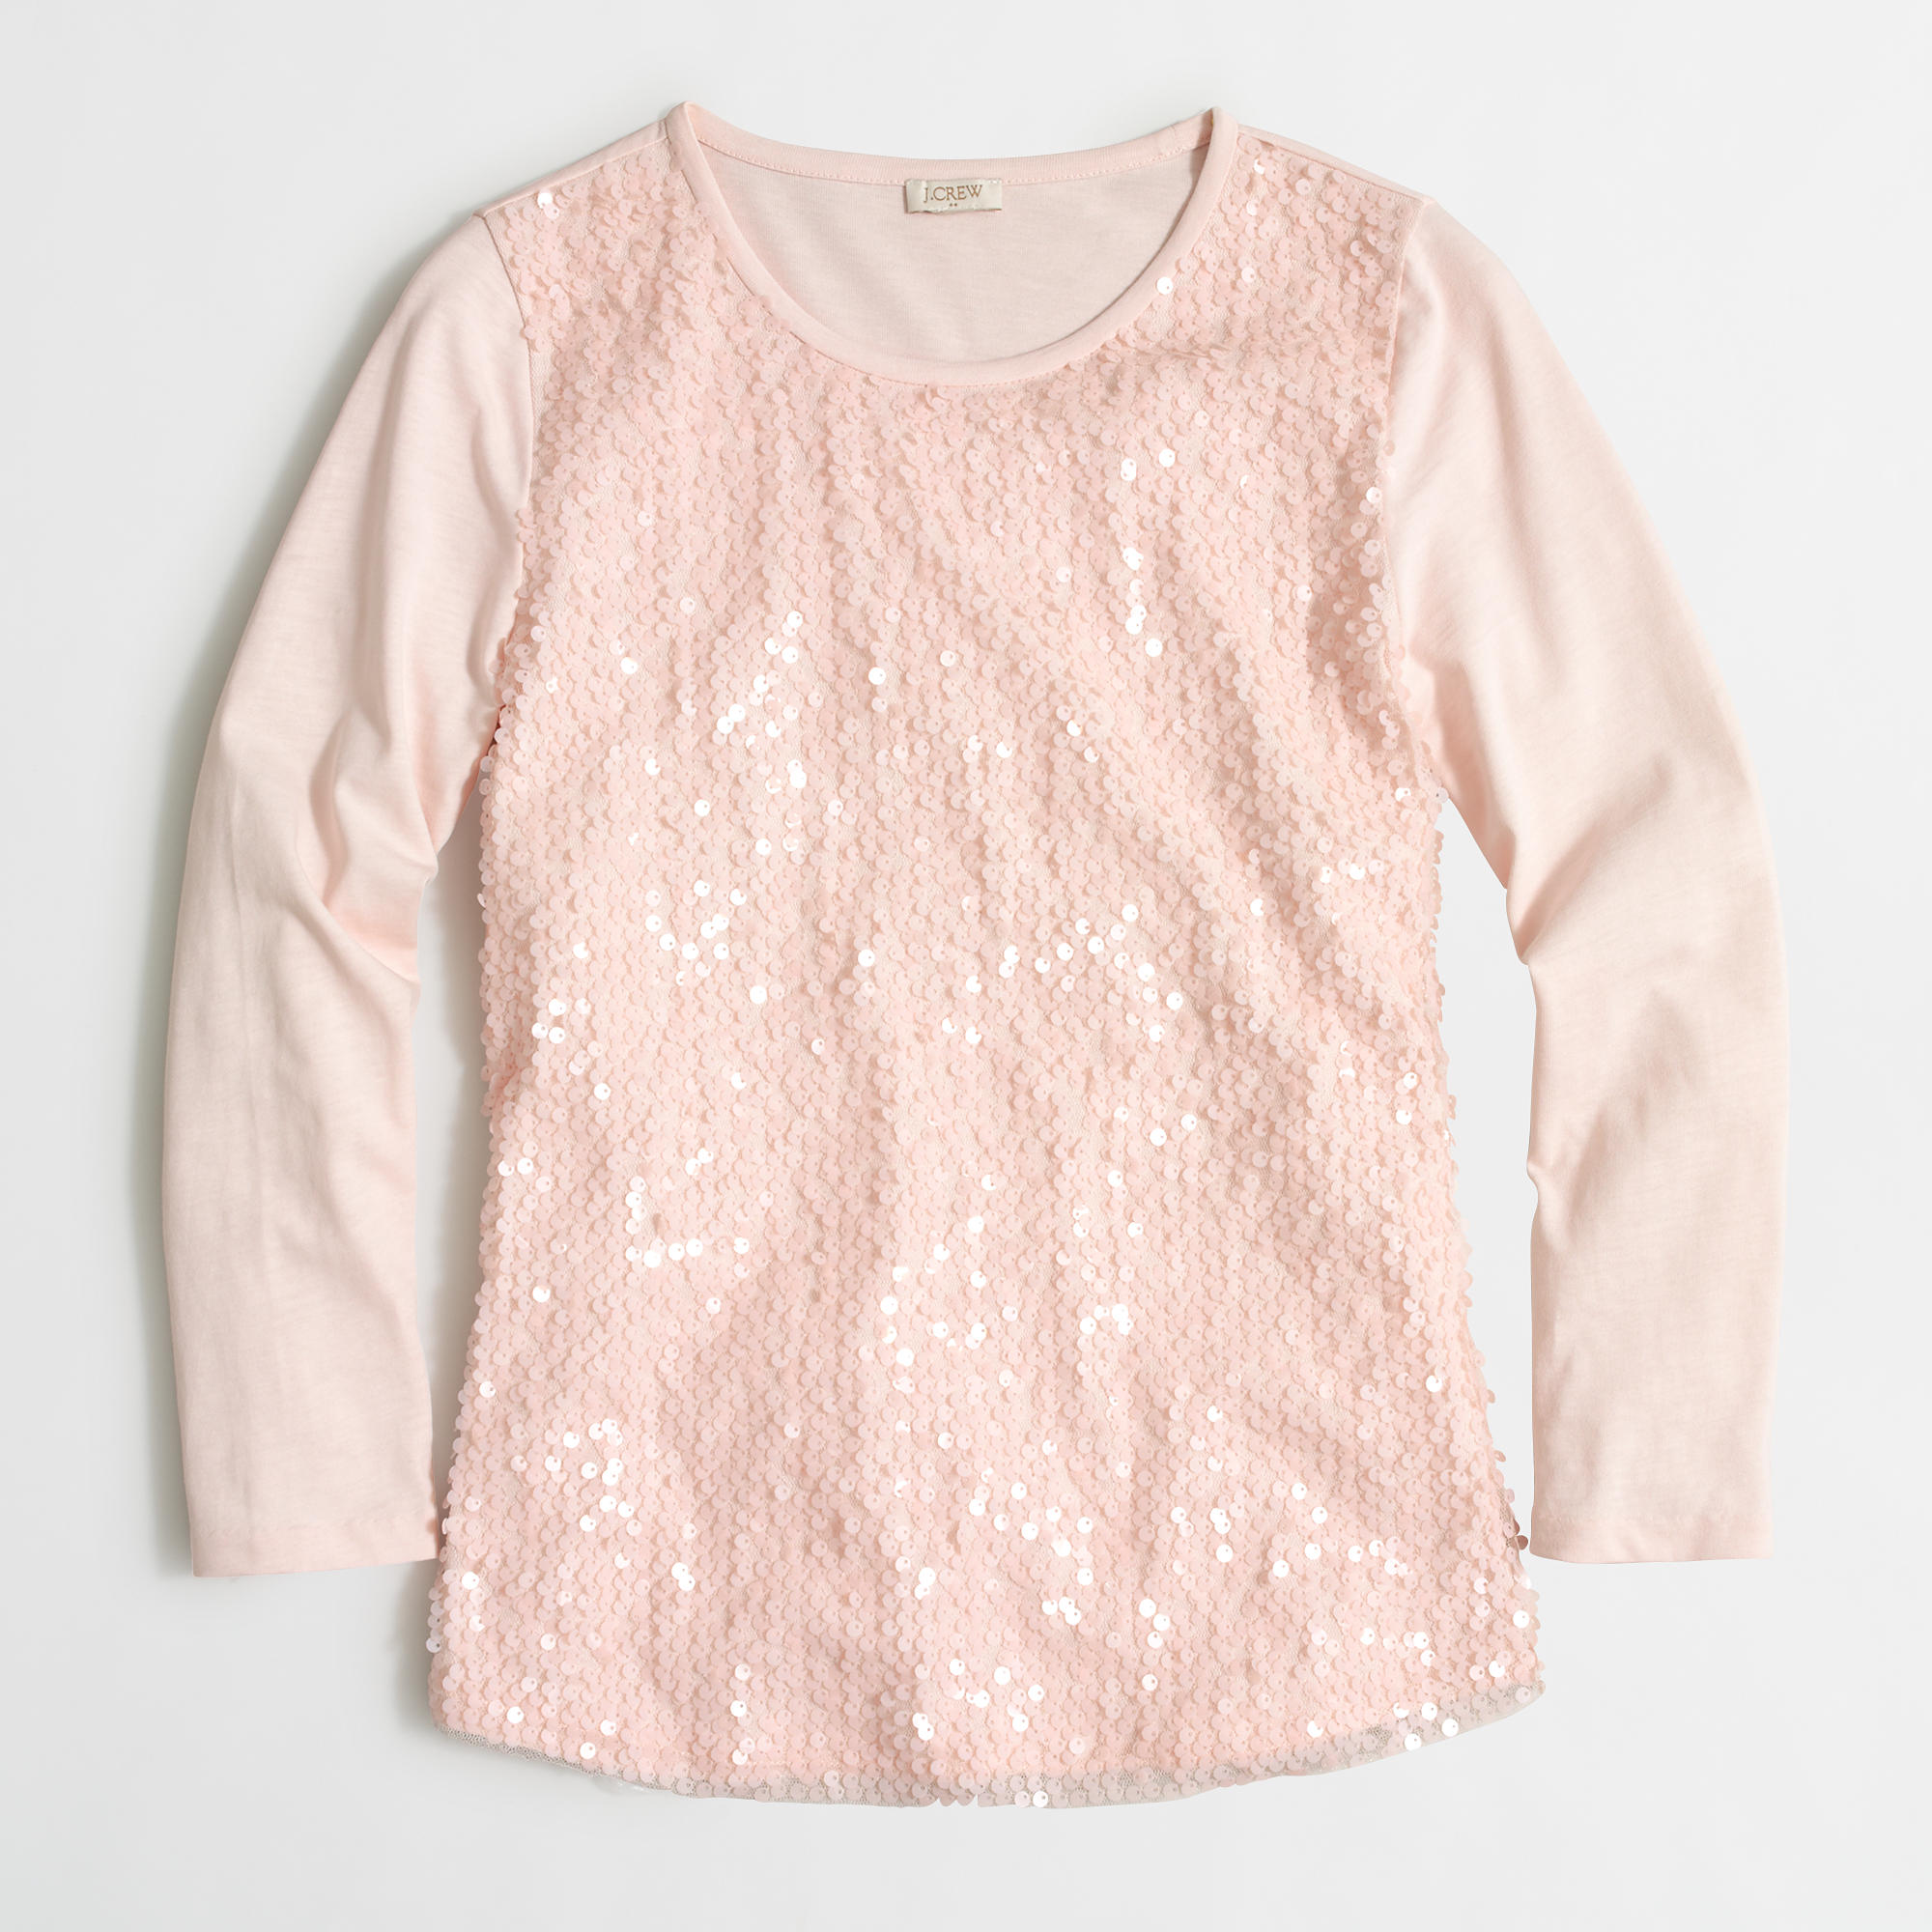 Pretty sequin front tee - on sale for $21!